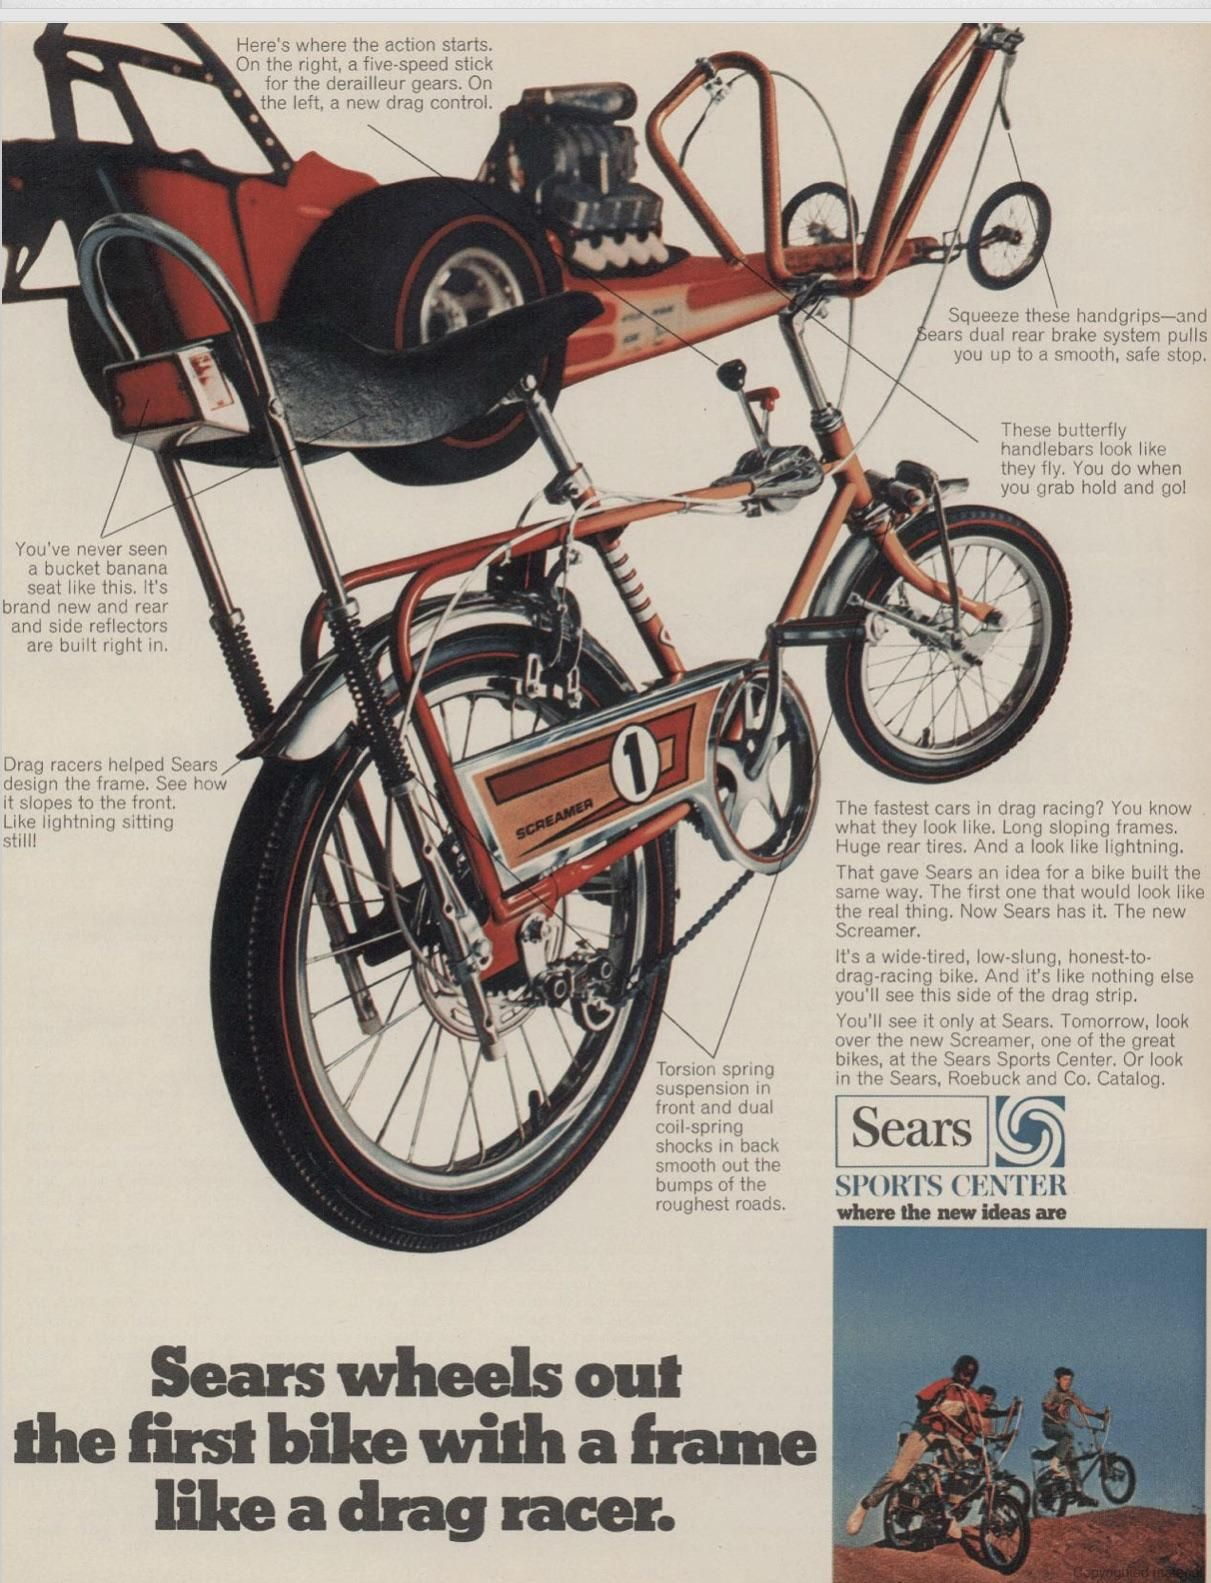 A Dragster Bike From Sears 1966 Vintageads Ads Vintage Printad Tvads Advertising Brandscience Influence Online Bicycle Vintage Bicycles Chopper Bike